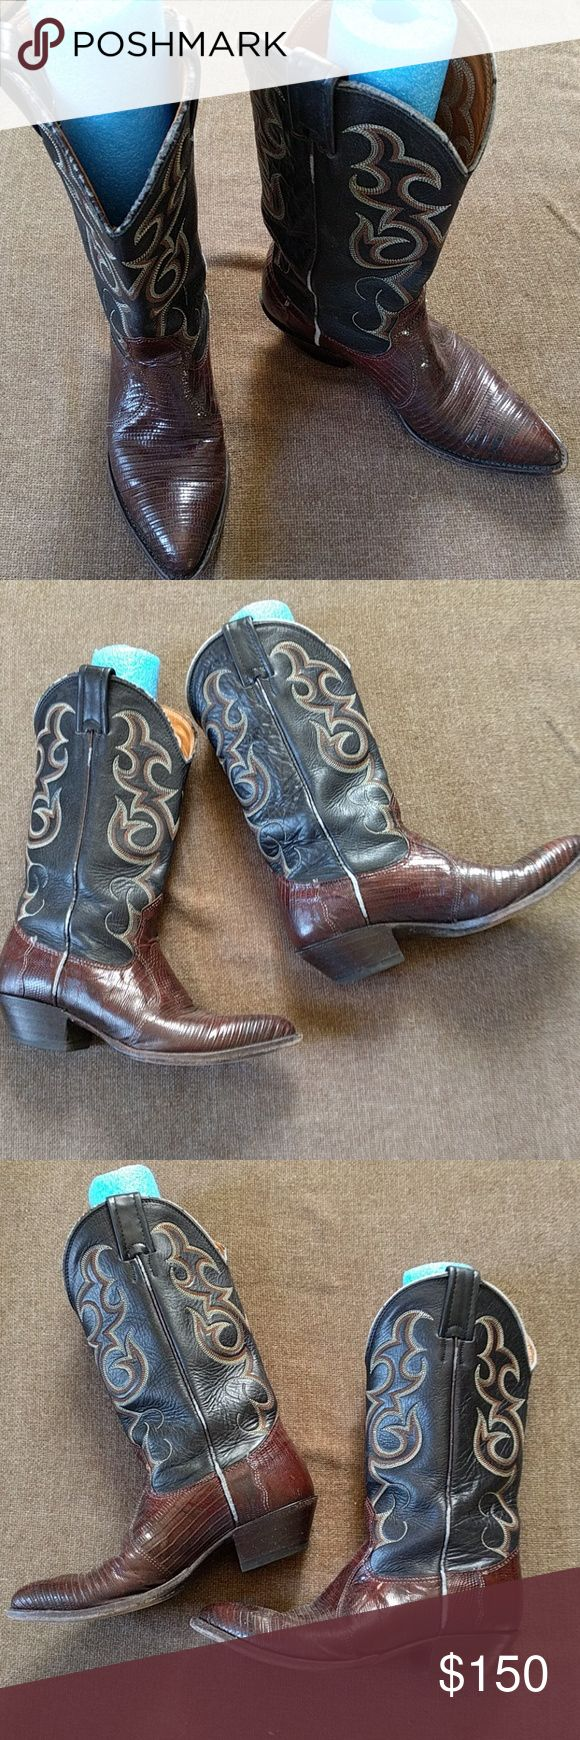 Nocona cowboy boots These leather boots rock. Outlaw country!!   Inside, says 5 1/2 B but they run really big. I'd say they're more of a 6.5 but I have tiny feet. Needed 2x thick socks. There's a little wearing on the side piping otherwise awesome shape! Shoes Heeled Boots